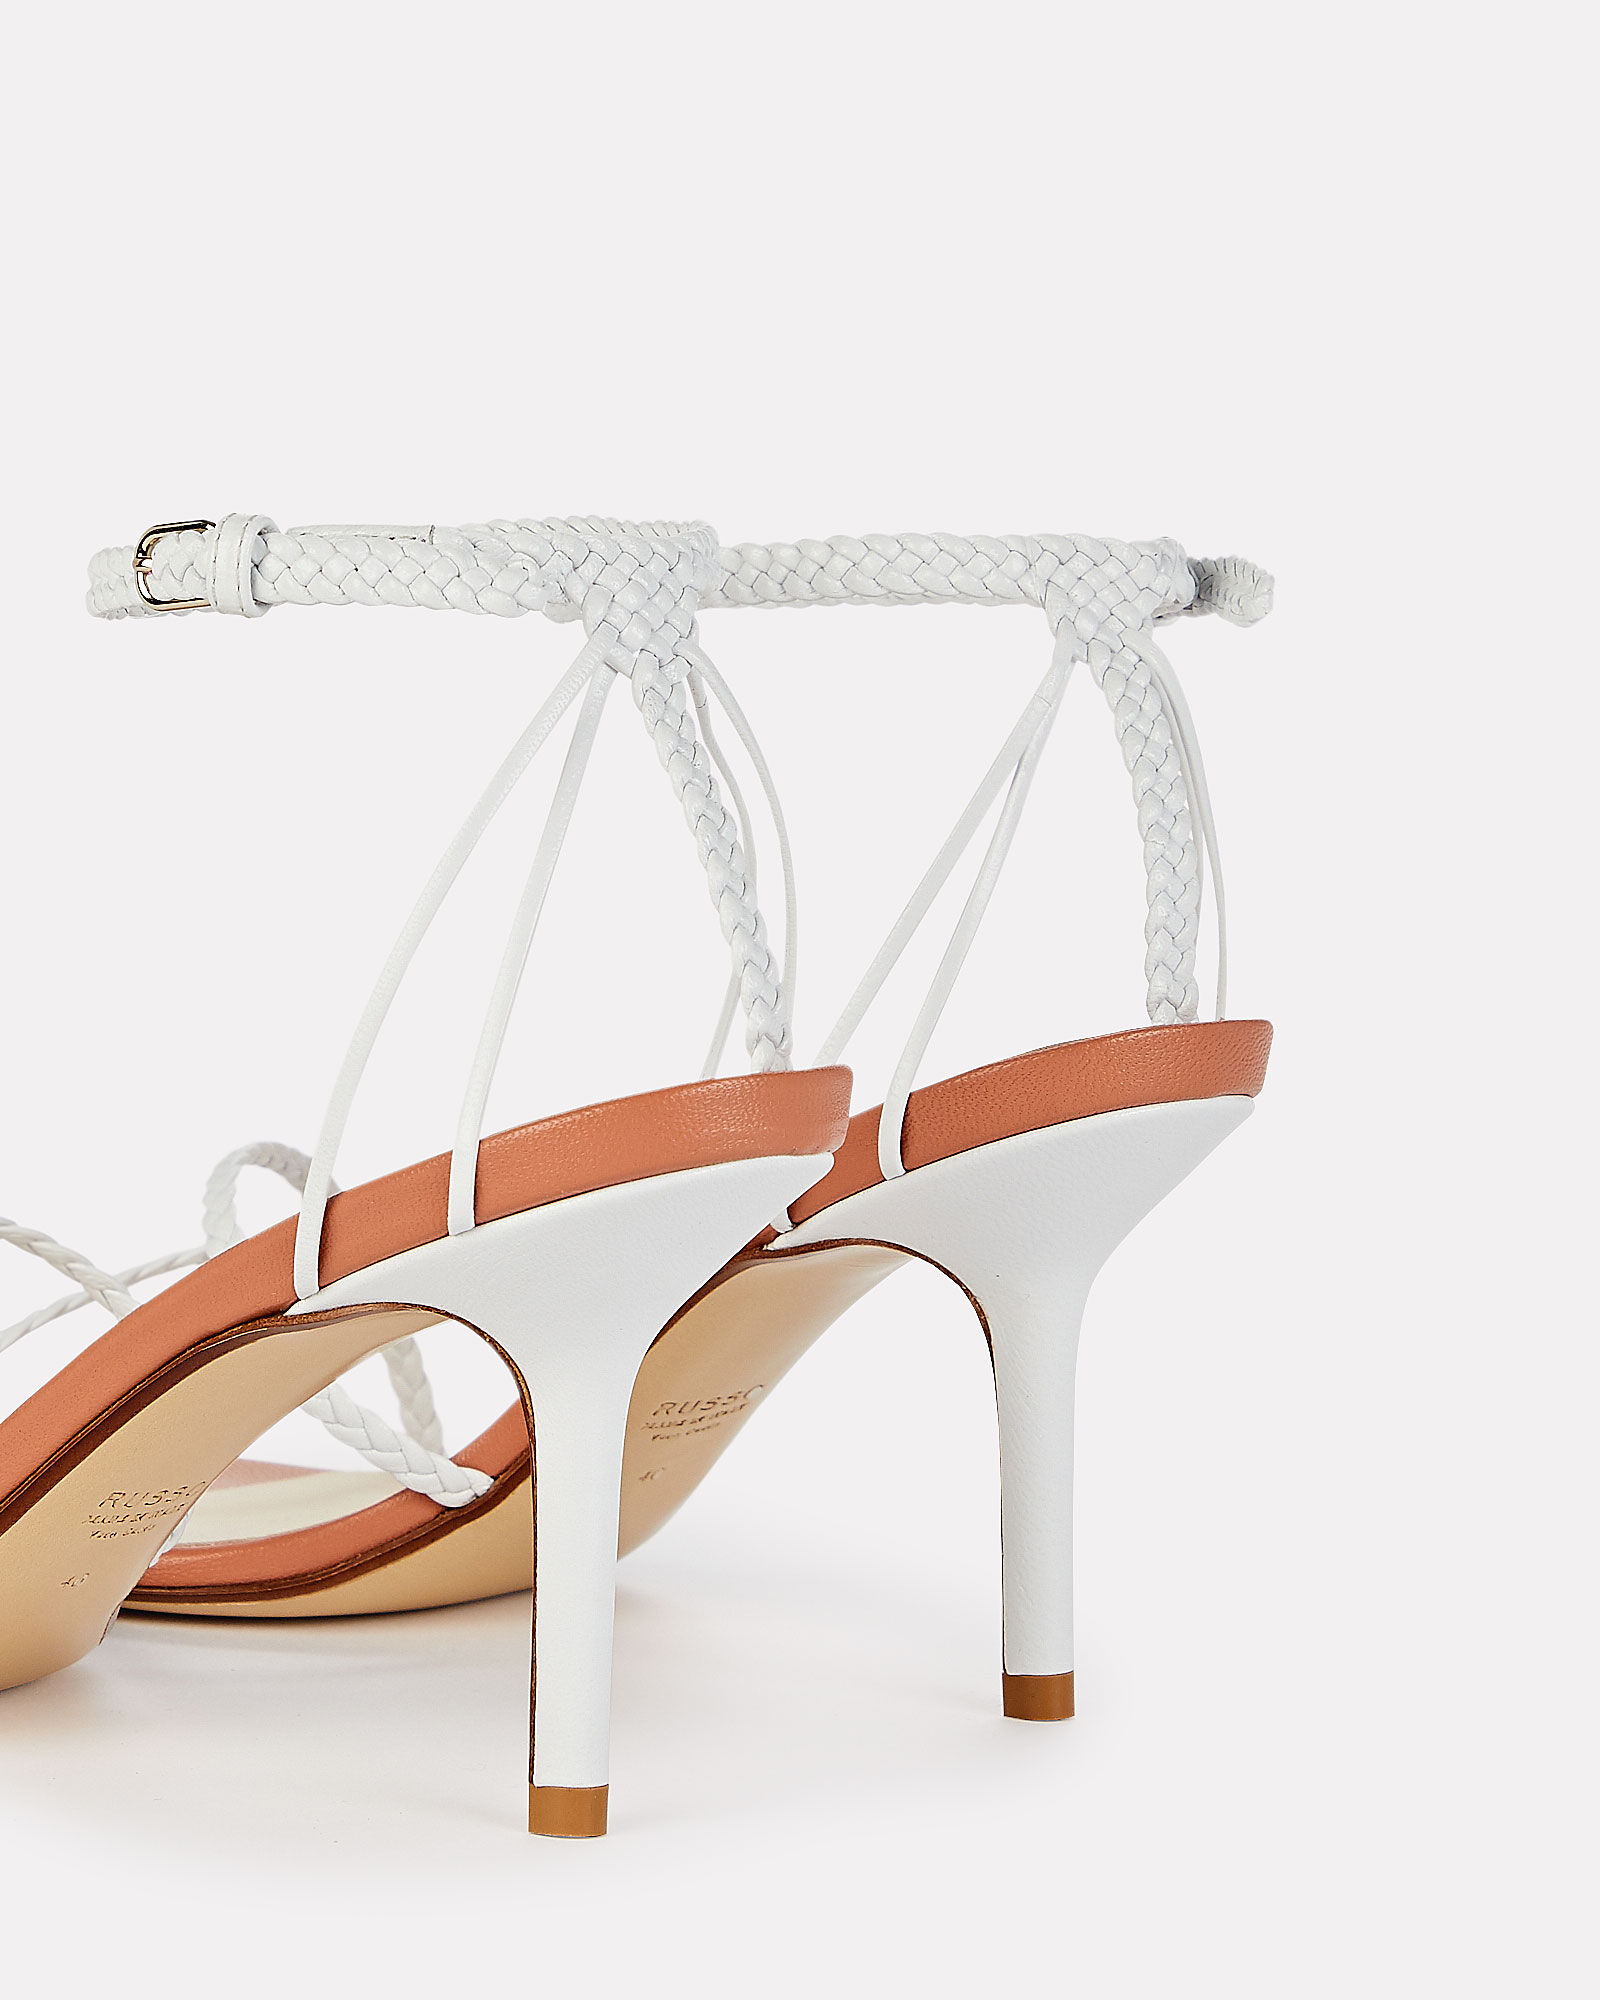 Braided Leather Stiletto Sandals, WHITE, hi-res